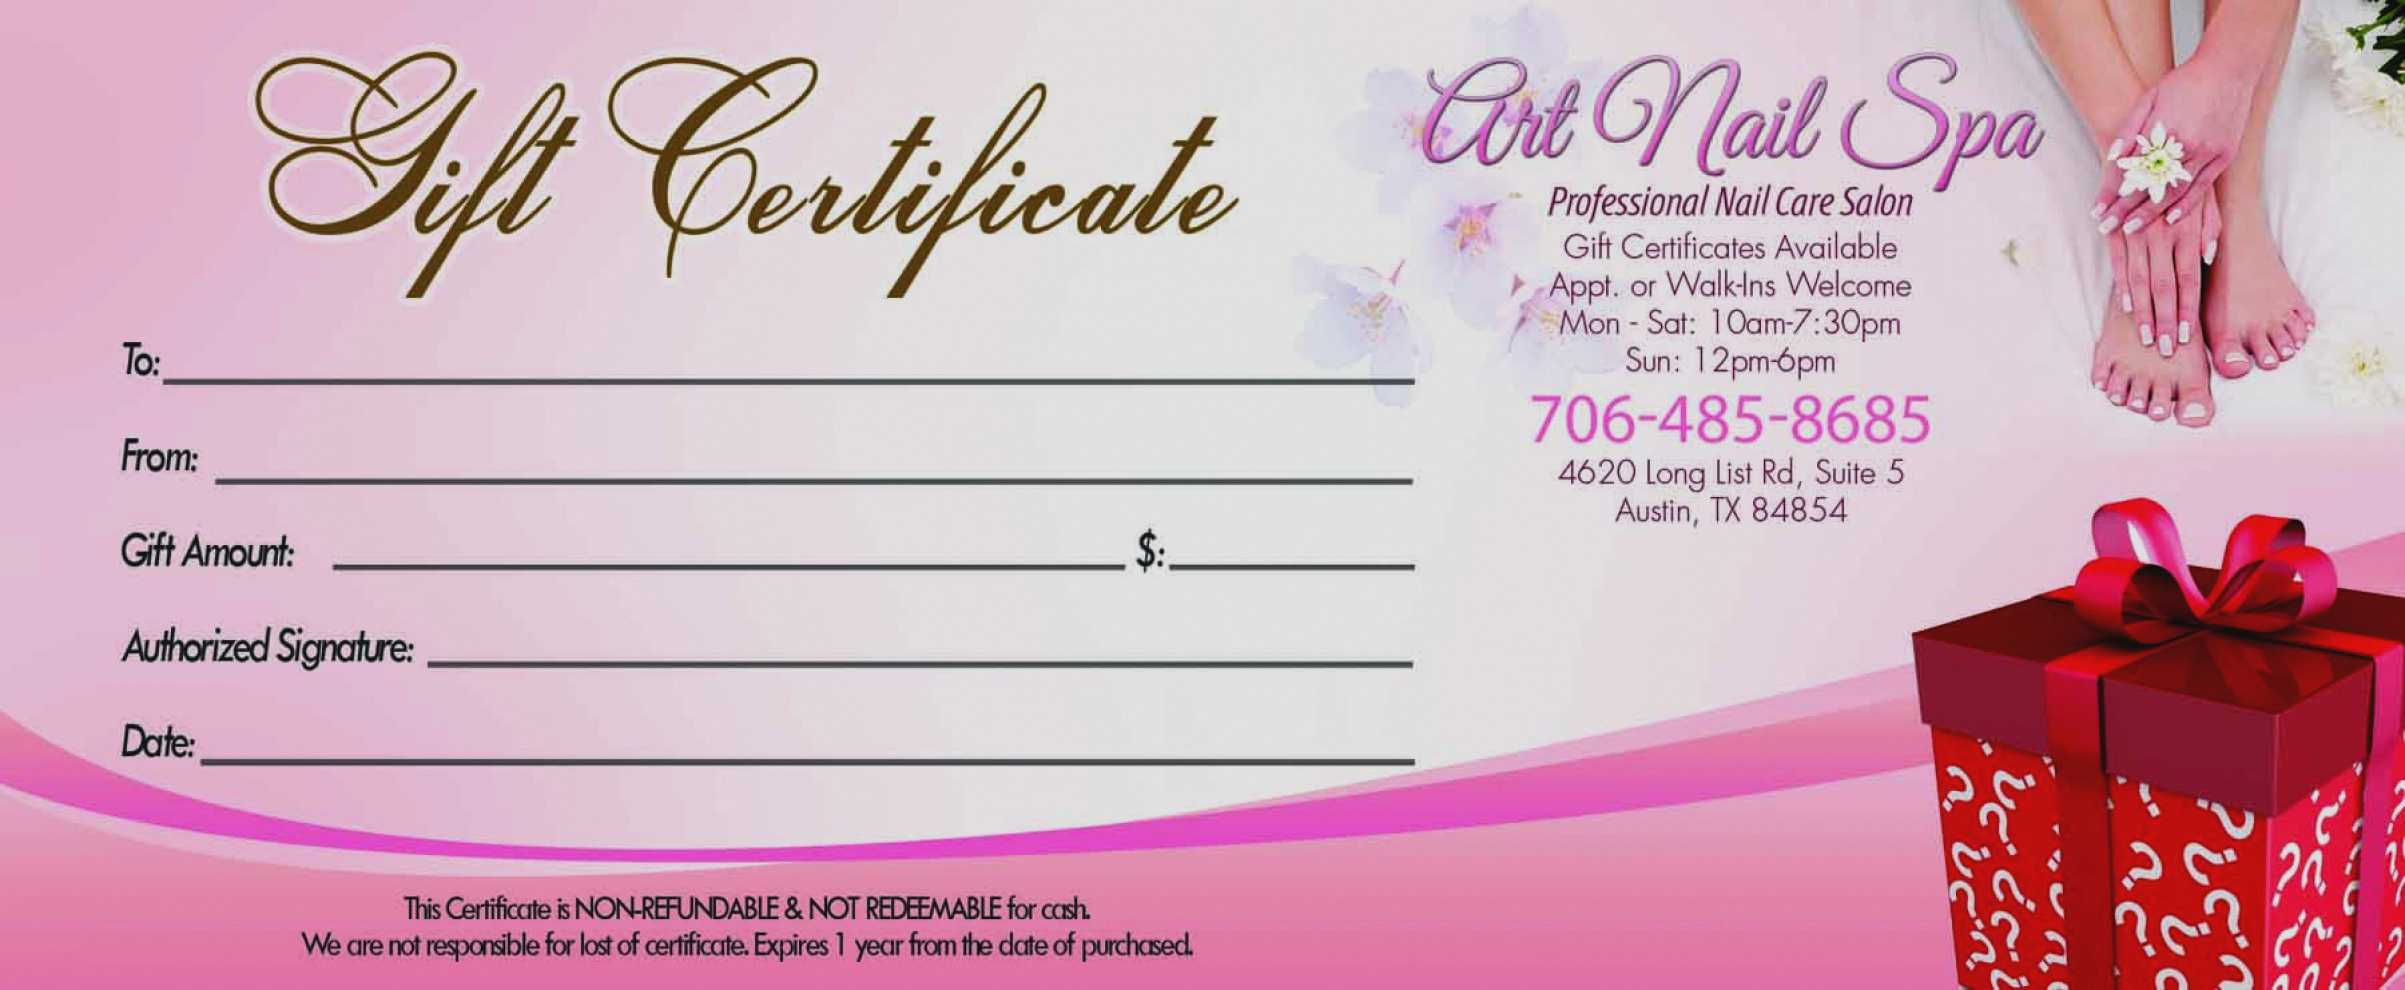 Gift Certificate Template For Nail Salon Throughout Salon Gift Certificate Template